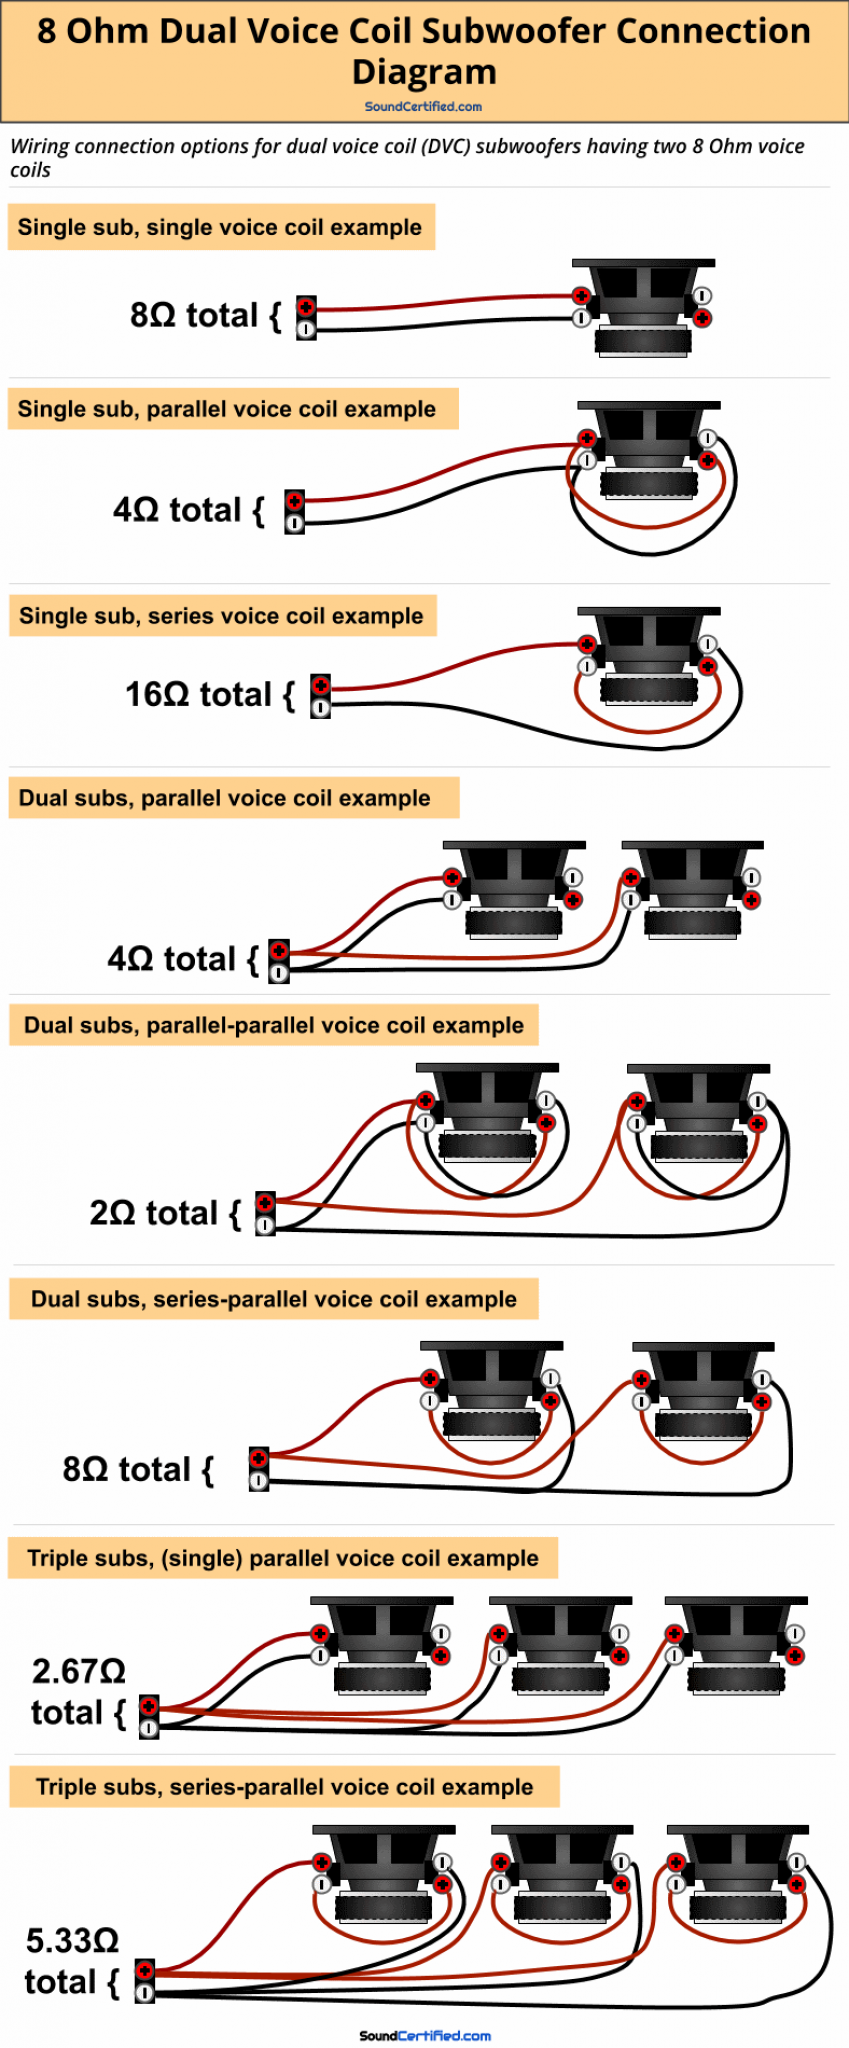 How To Wire A Dual Voice Coil Speaker Subwoofer Wiring Diagrams In 2020 Subwoofer Wiring Subwoofer Speaker